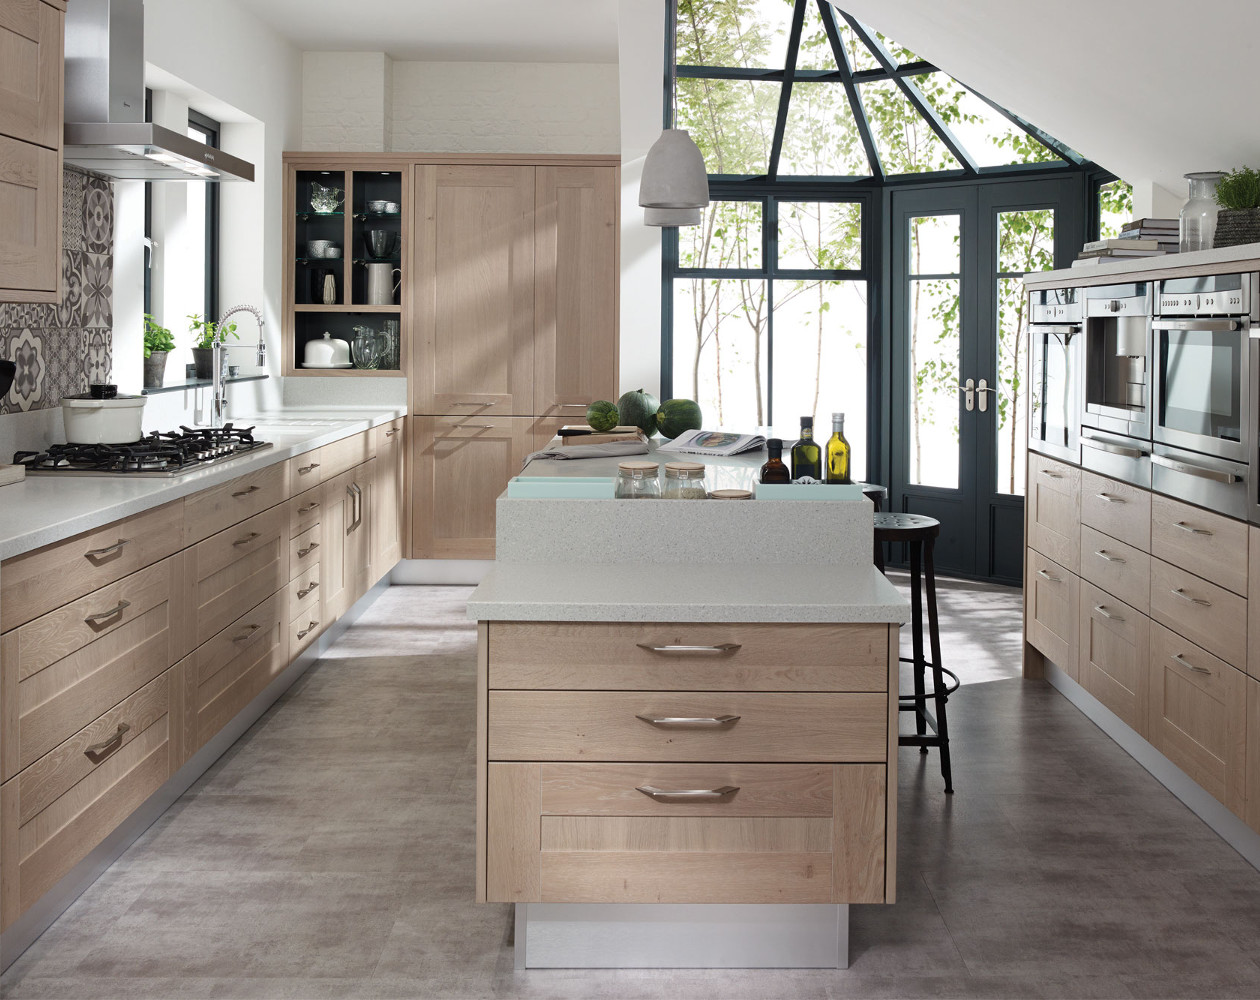 Bespoke Kitchen Design in the Cotswolds